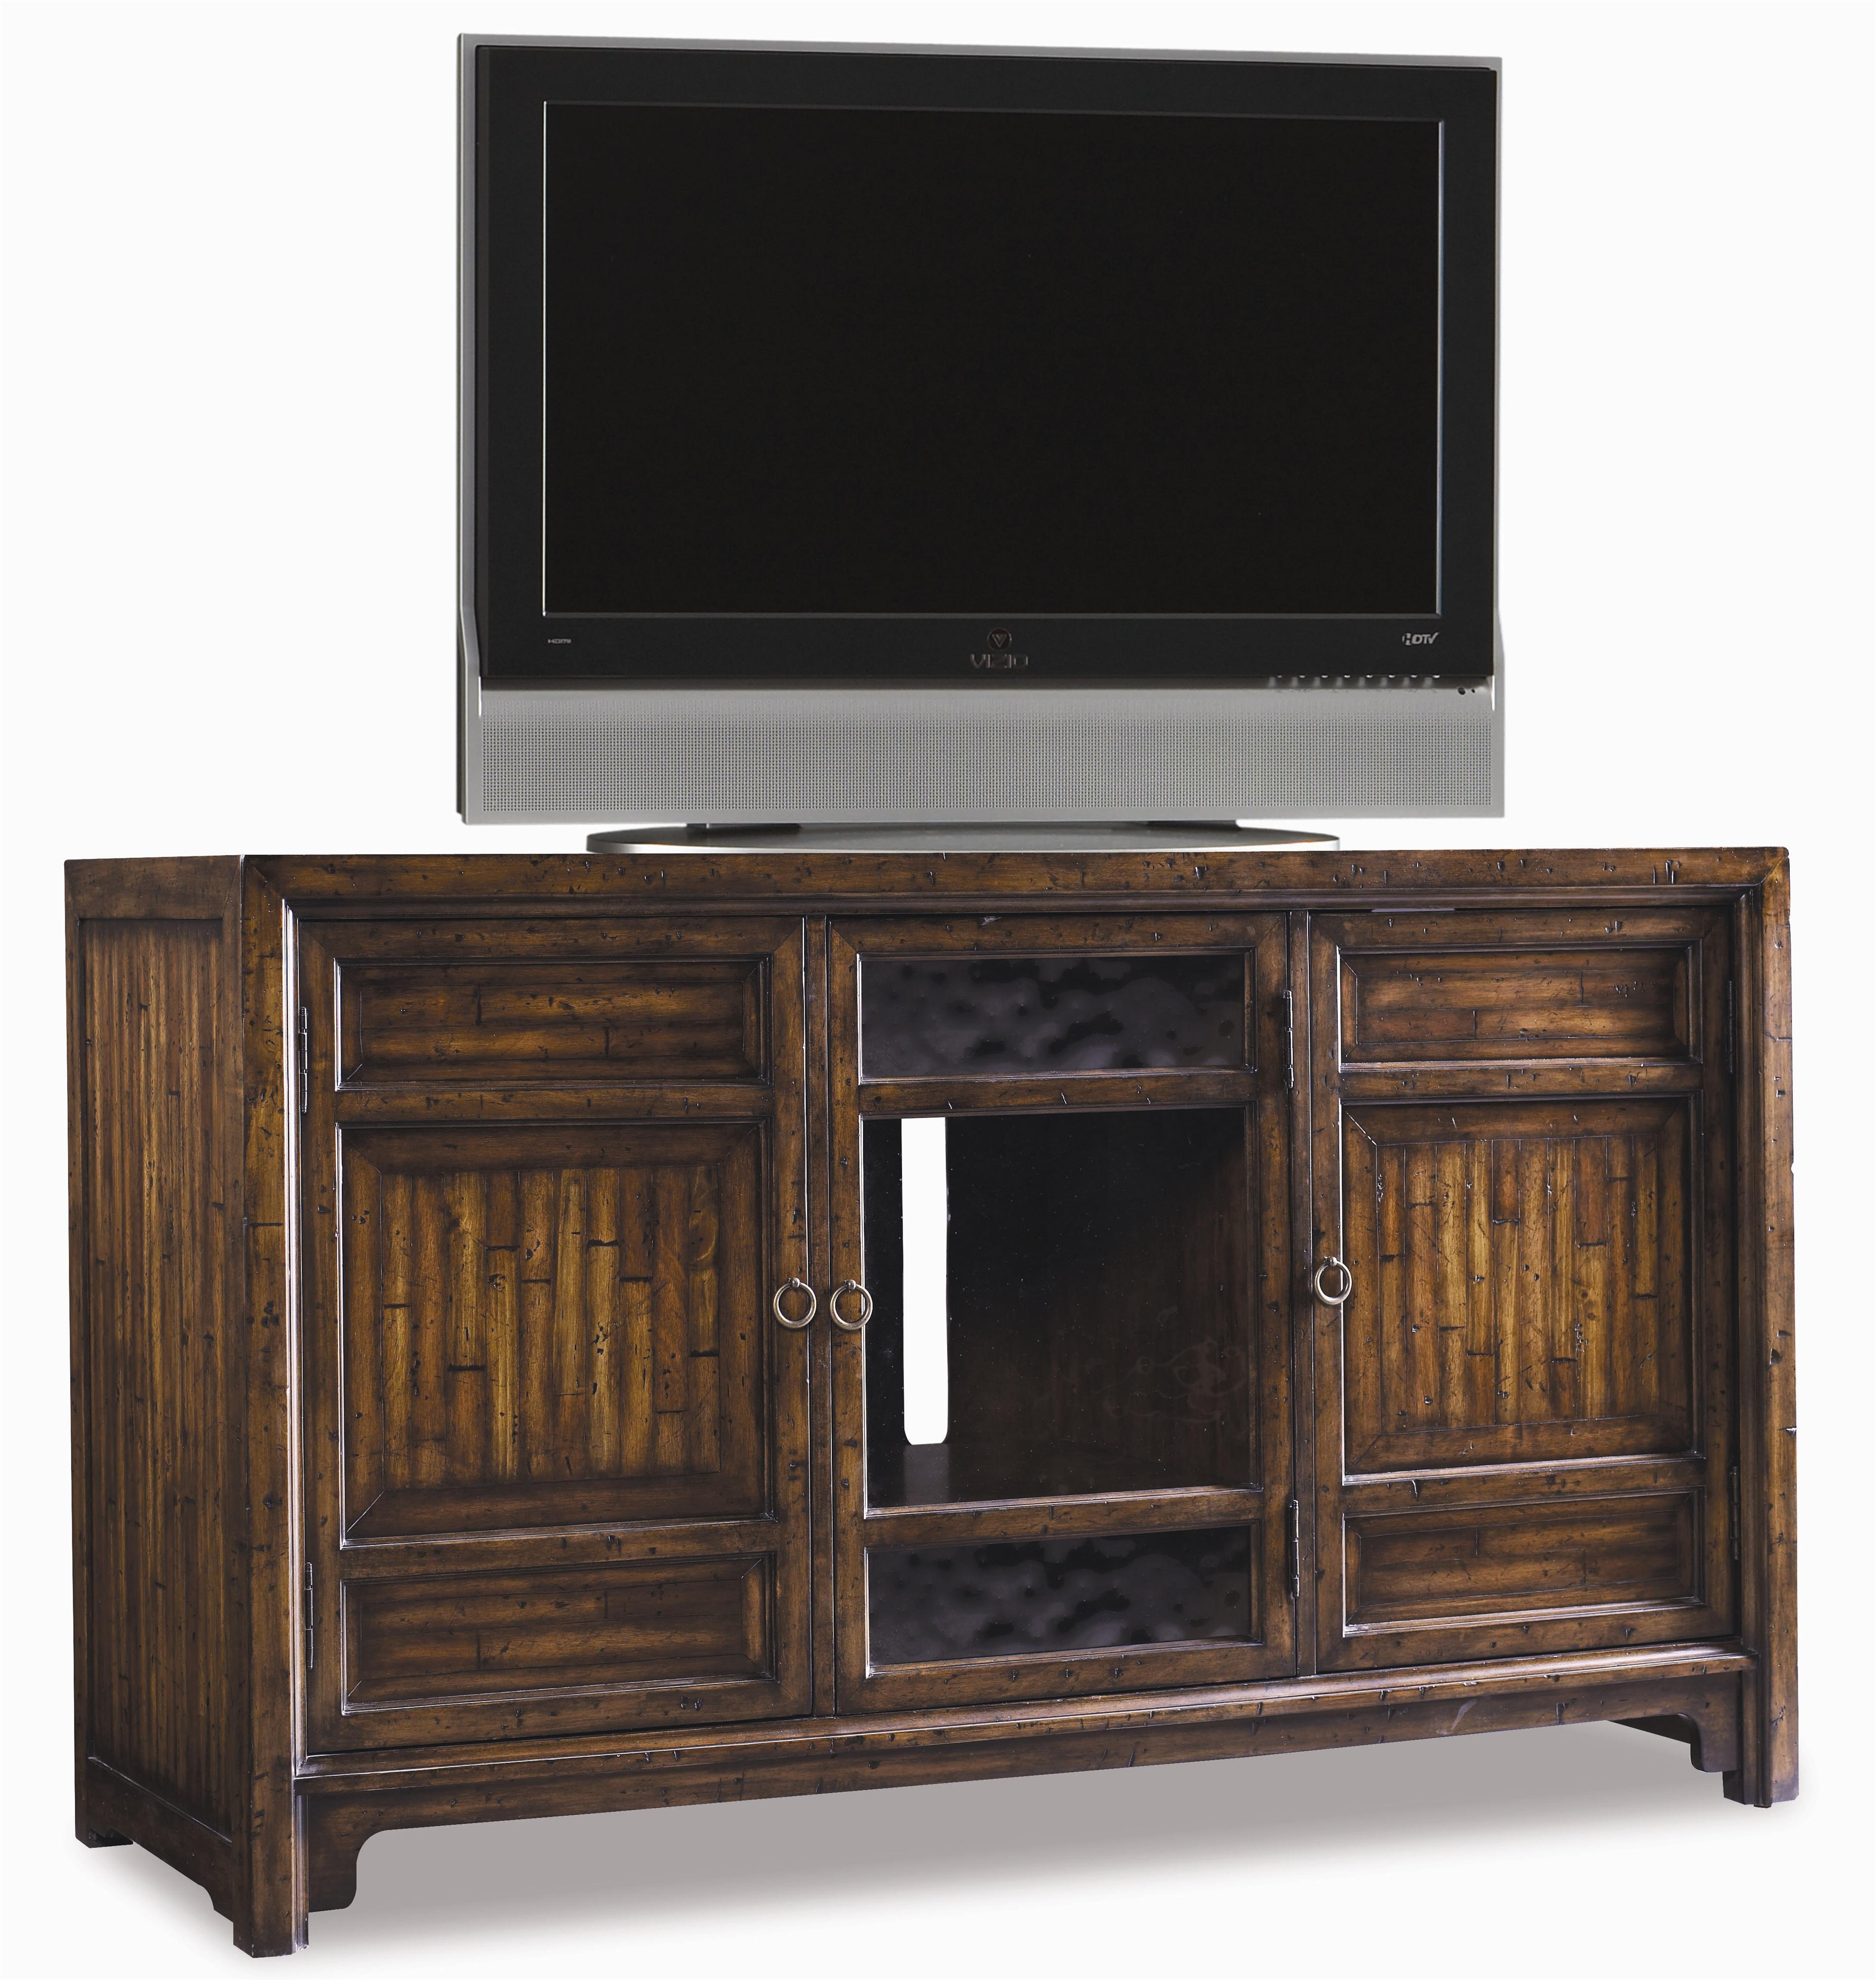 Legends Entertainment Console at Williams & Kay